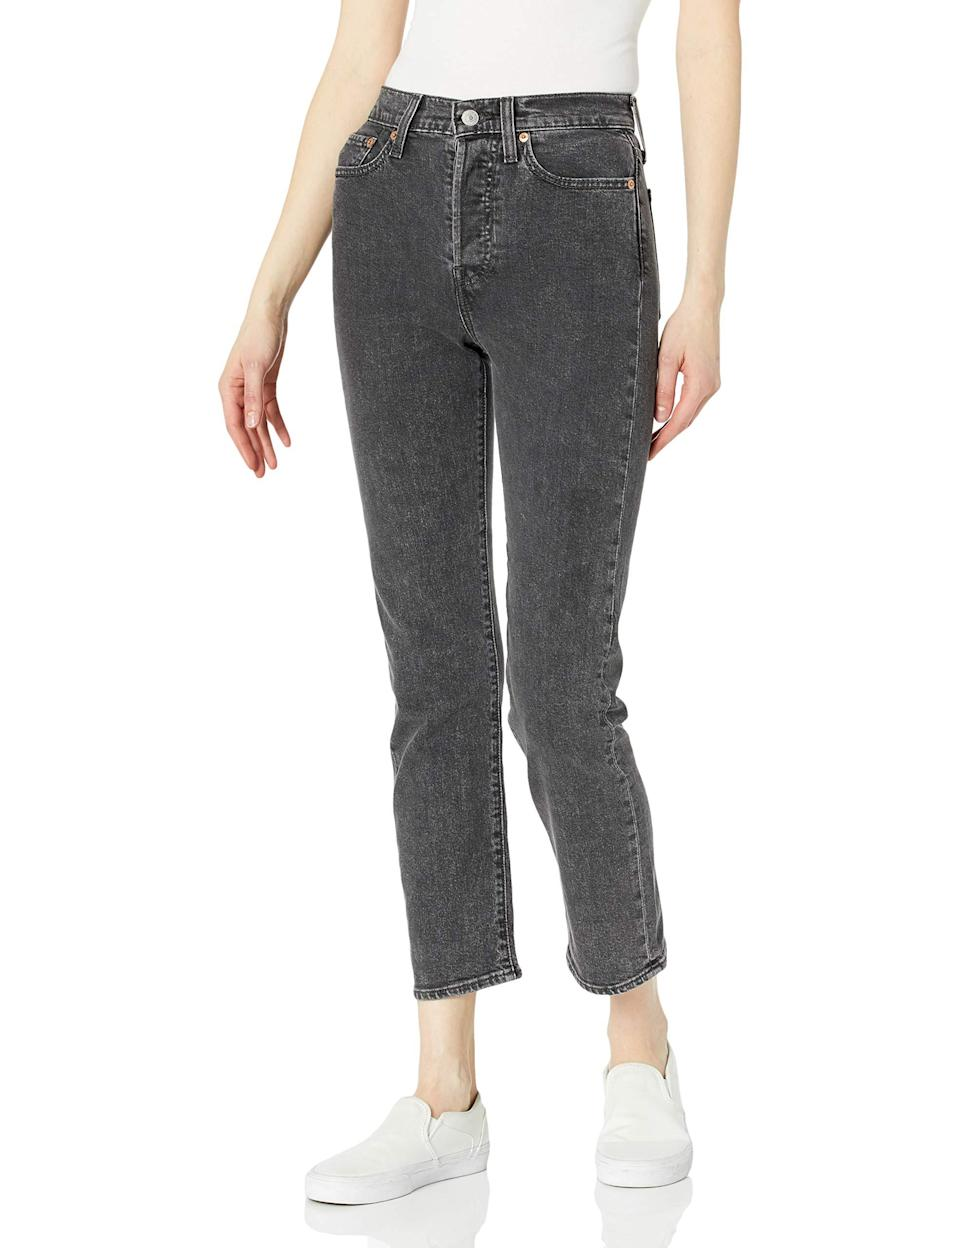 """<h2>40% Off Levi's Wedgie Straight Jeans</h2><br>Levi's legendary dungarees are about as close to <em>The Sisterhood of the Traveling Pants</em> as we'll ever really get — their butt-flattering powers seem to know no limits (but we do recommend getting your own size).<br><br><em>Shop Levi's at <strong><a href=""""https://amzn.to/2TOQvJM"""" rel=""""nofollow noopener"""" target=""""_blank"""" data-ylk=""""slk:Amazon"""" class=""""link rapid-noclick-resp"""">Amazon</a></strong></em><br><br><strong>Levi's</strong> Levi's Women's Wedgie Straight Jeans, $, available at <a href=""""https://amzn.to/3d1sgPg"""" rel=""""nofollow noopener"""" target=""""_blank"""" data-ylk=""""slk:Amazon"""" class=""""link rapid-noclick-resp"""">Amazon</a>"""